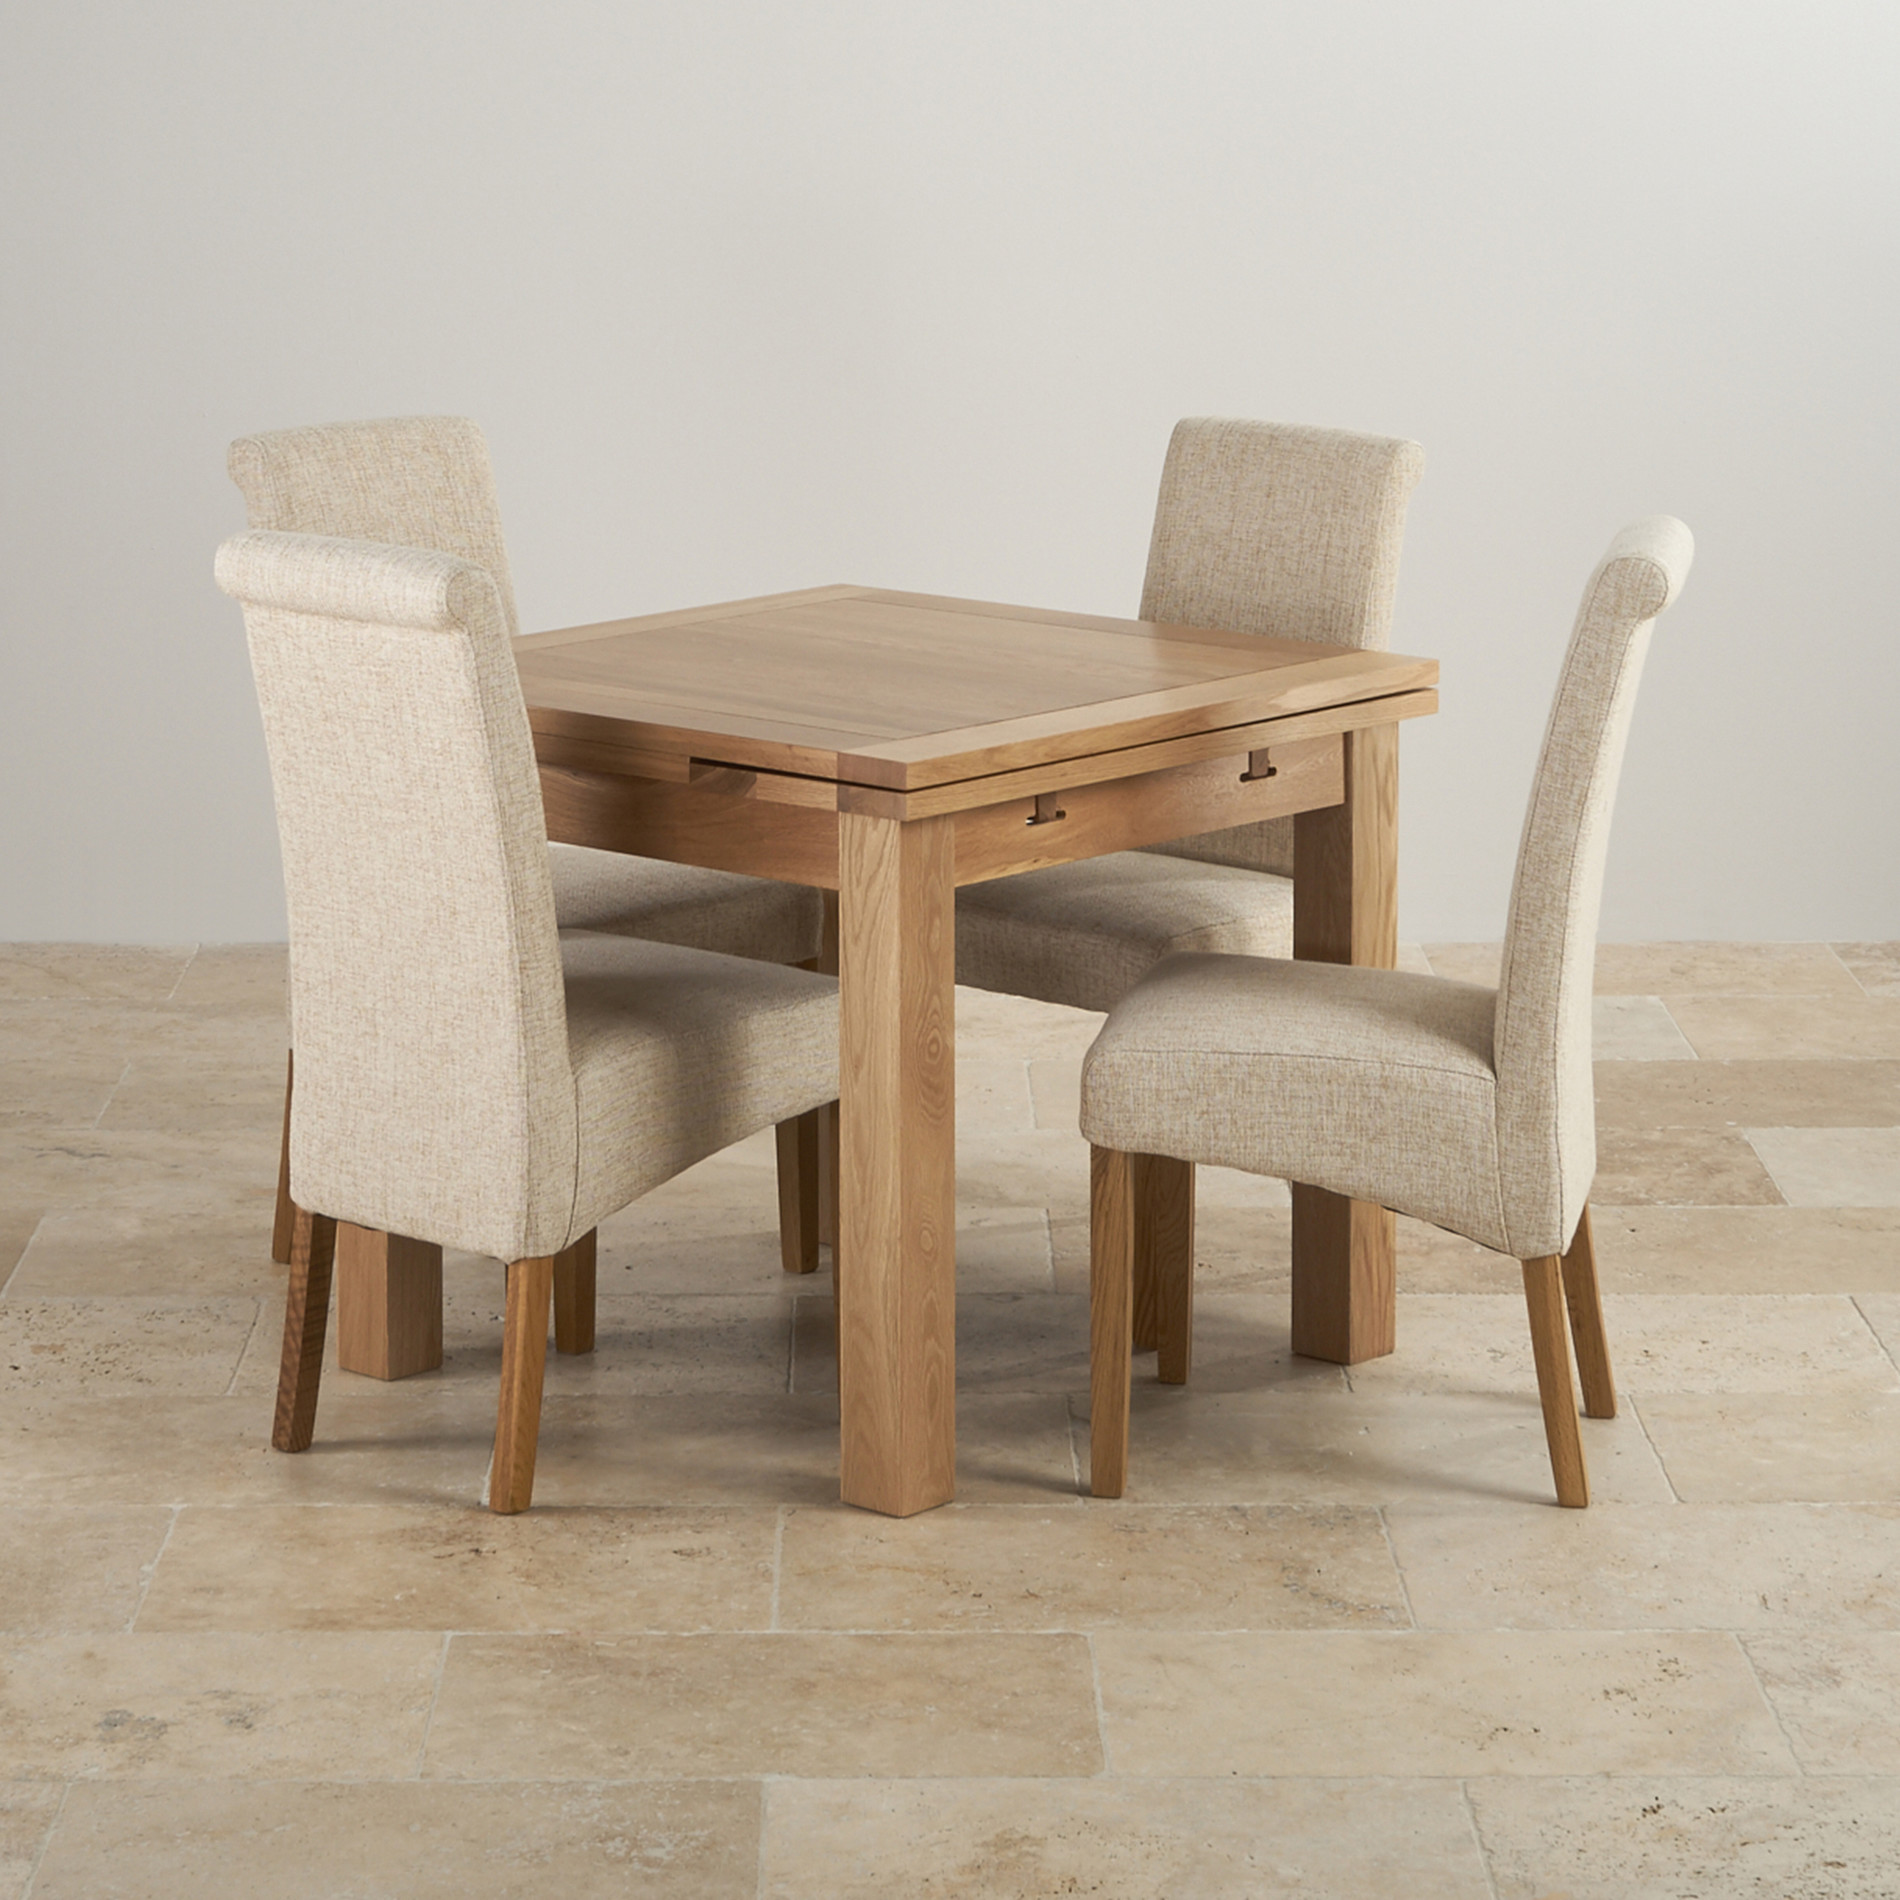 Dorset oak 3ft dining table with 4 beige fabric chairs for Solid oak dining table